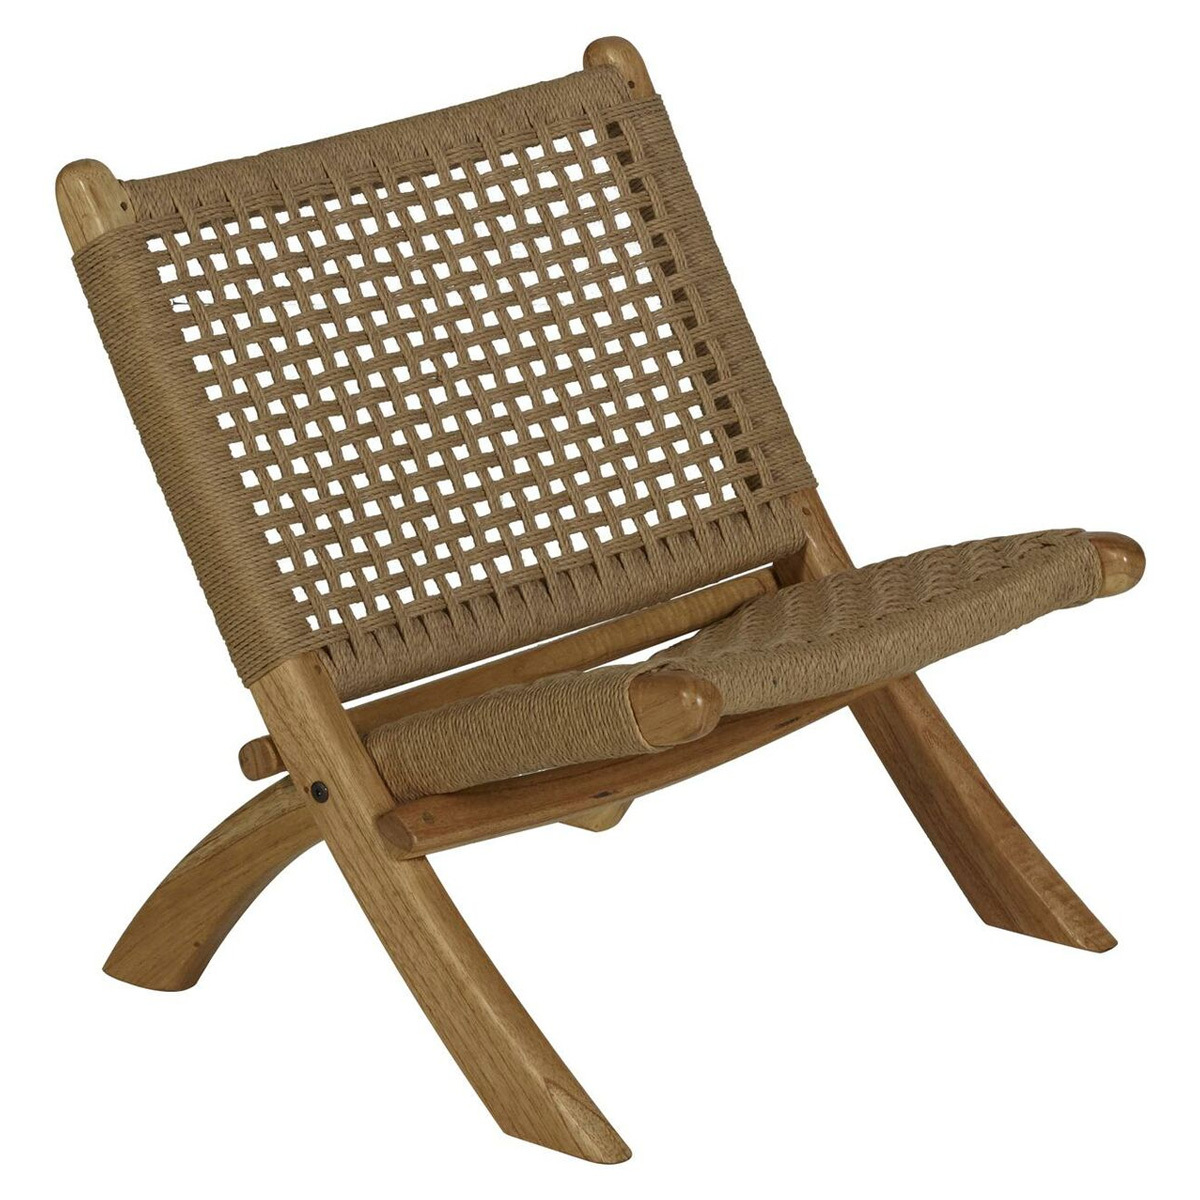 Fauteuil Folding Kids Chair Loom Rope - Naturel Folding Kids Chair Loom Rope - Naturel